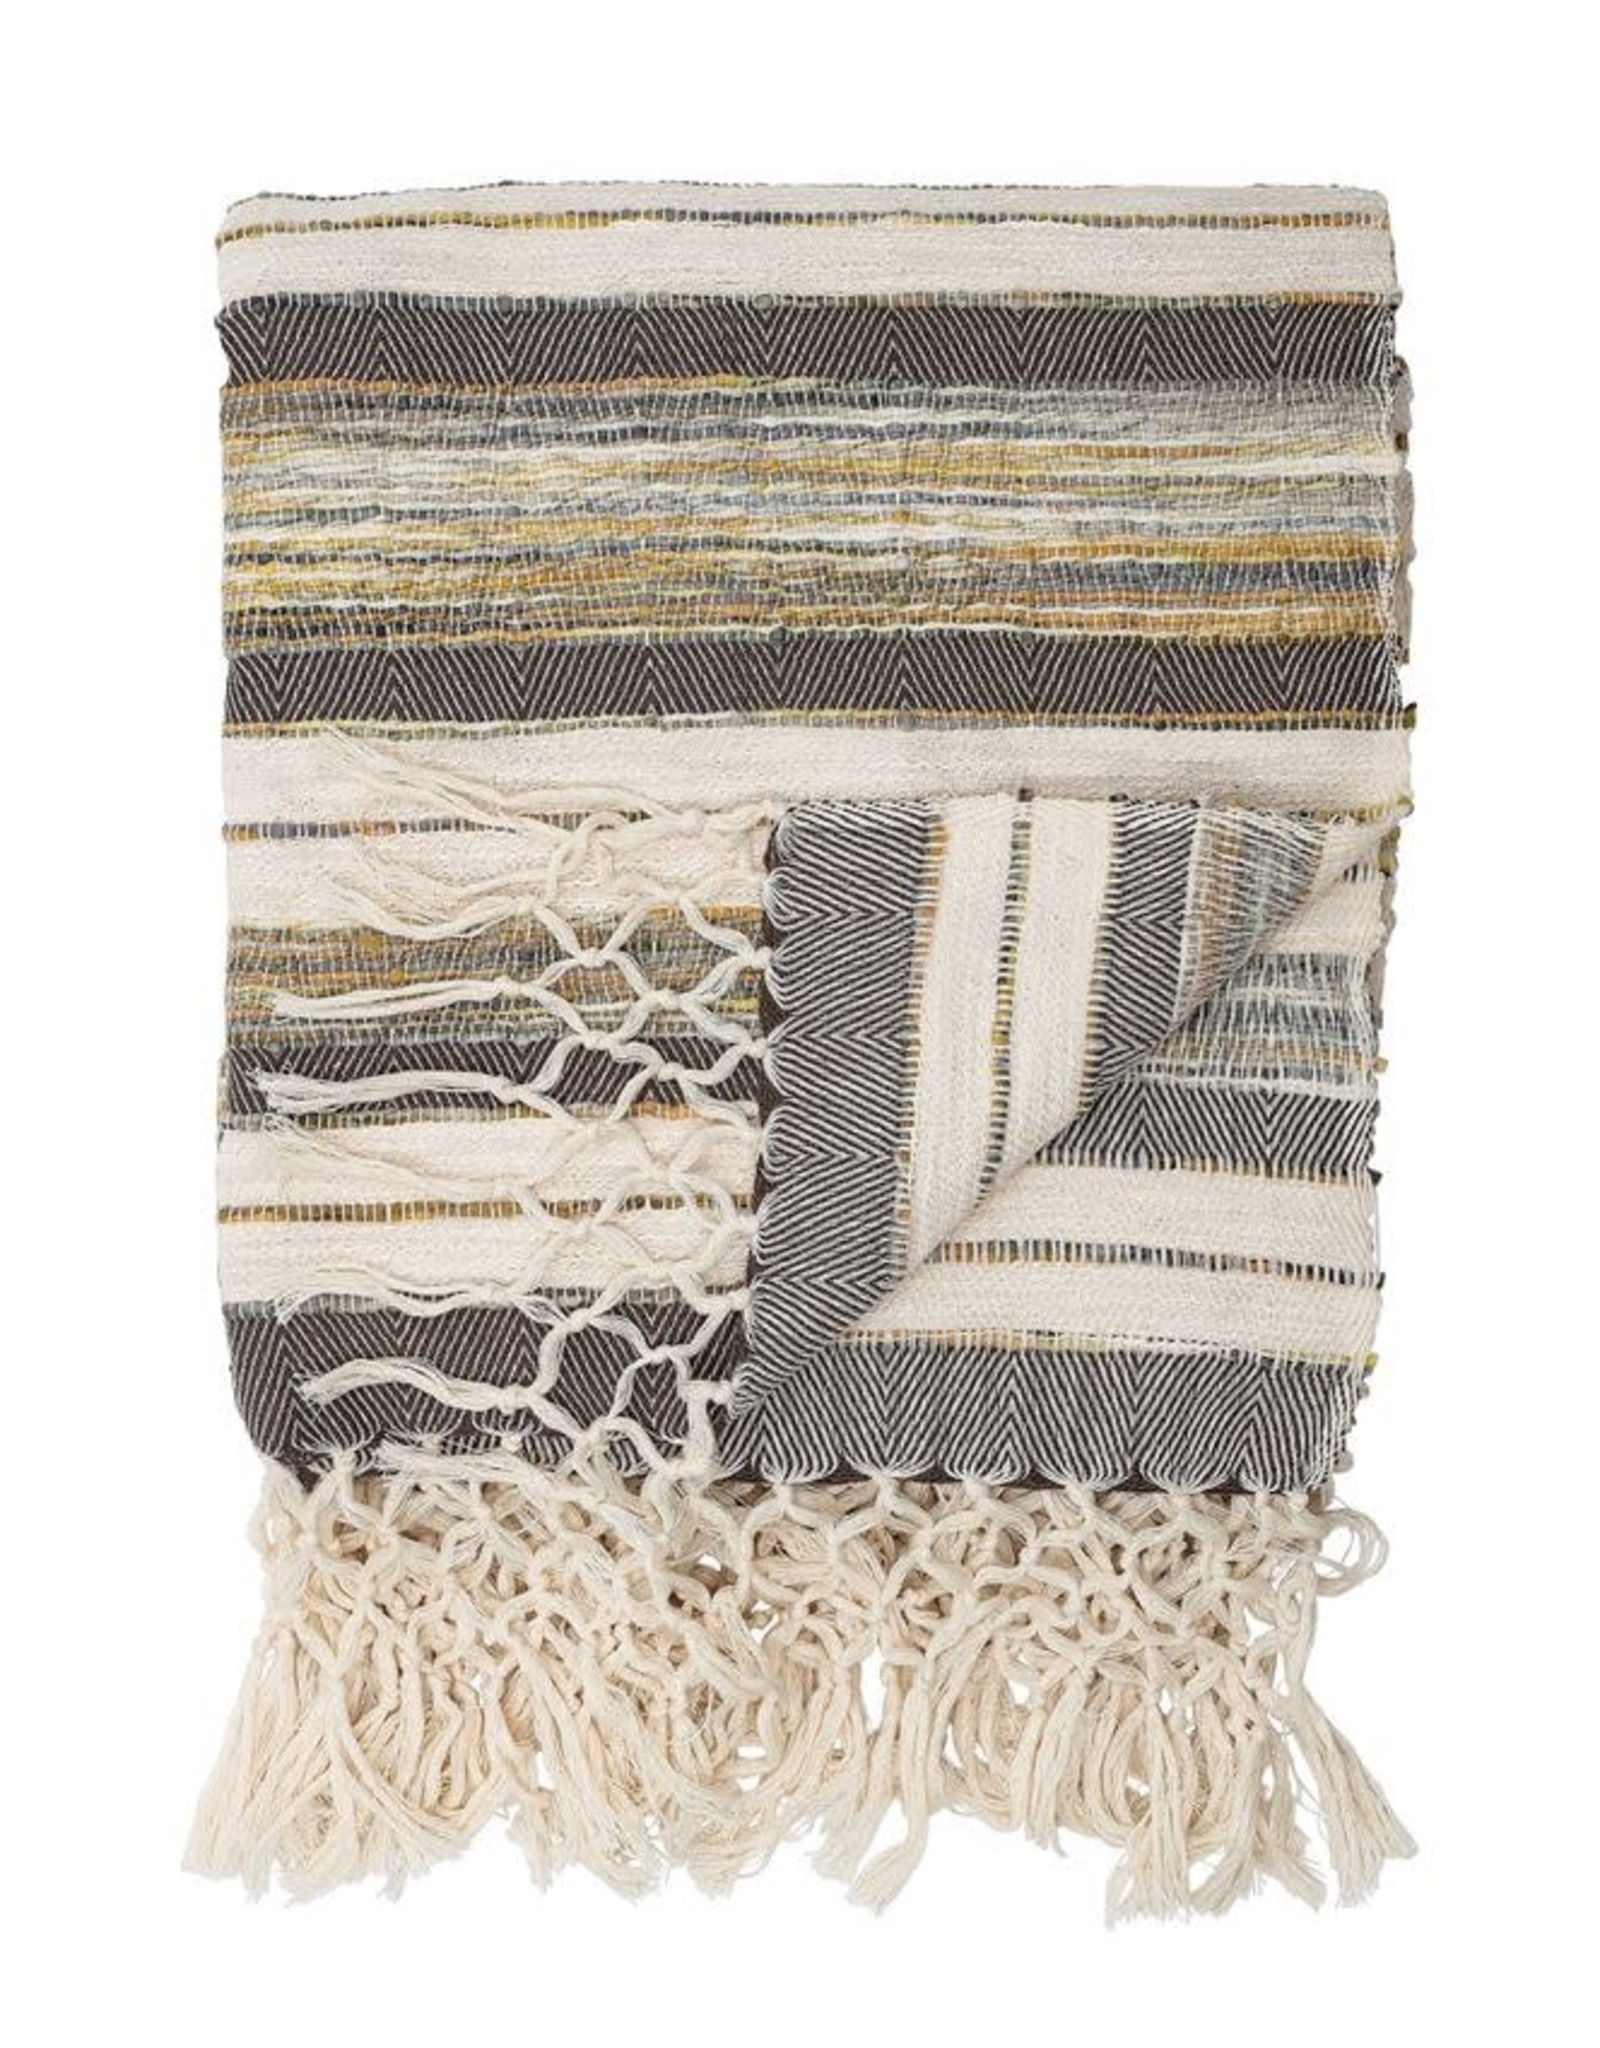 Hand-Woven Cotton Blend Throw with Fringe